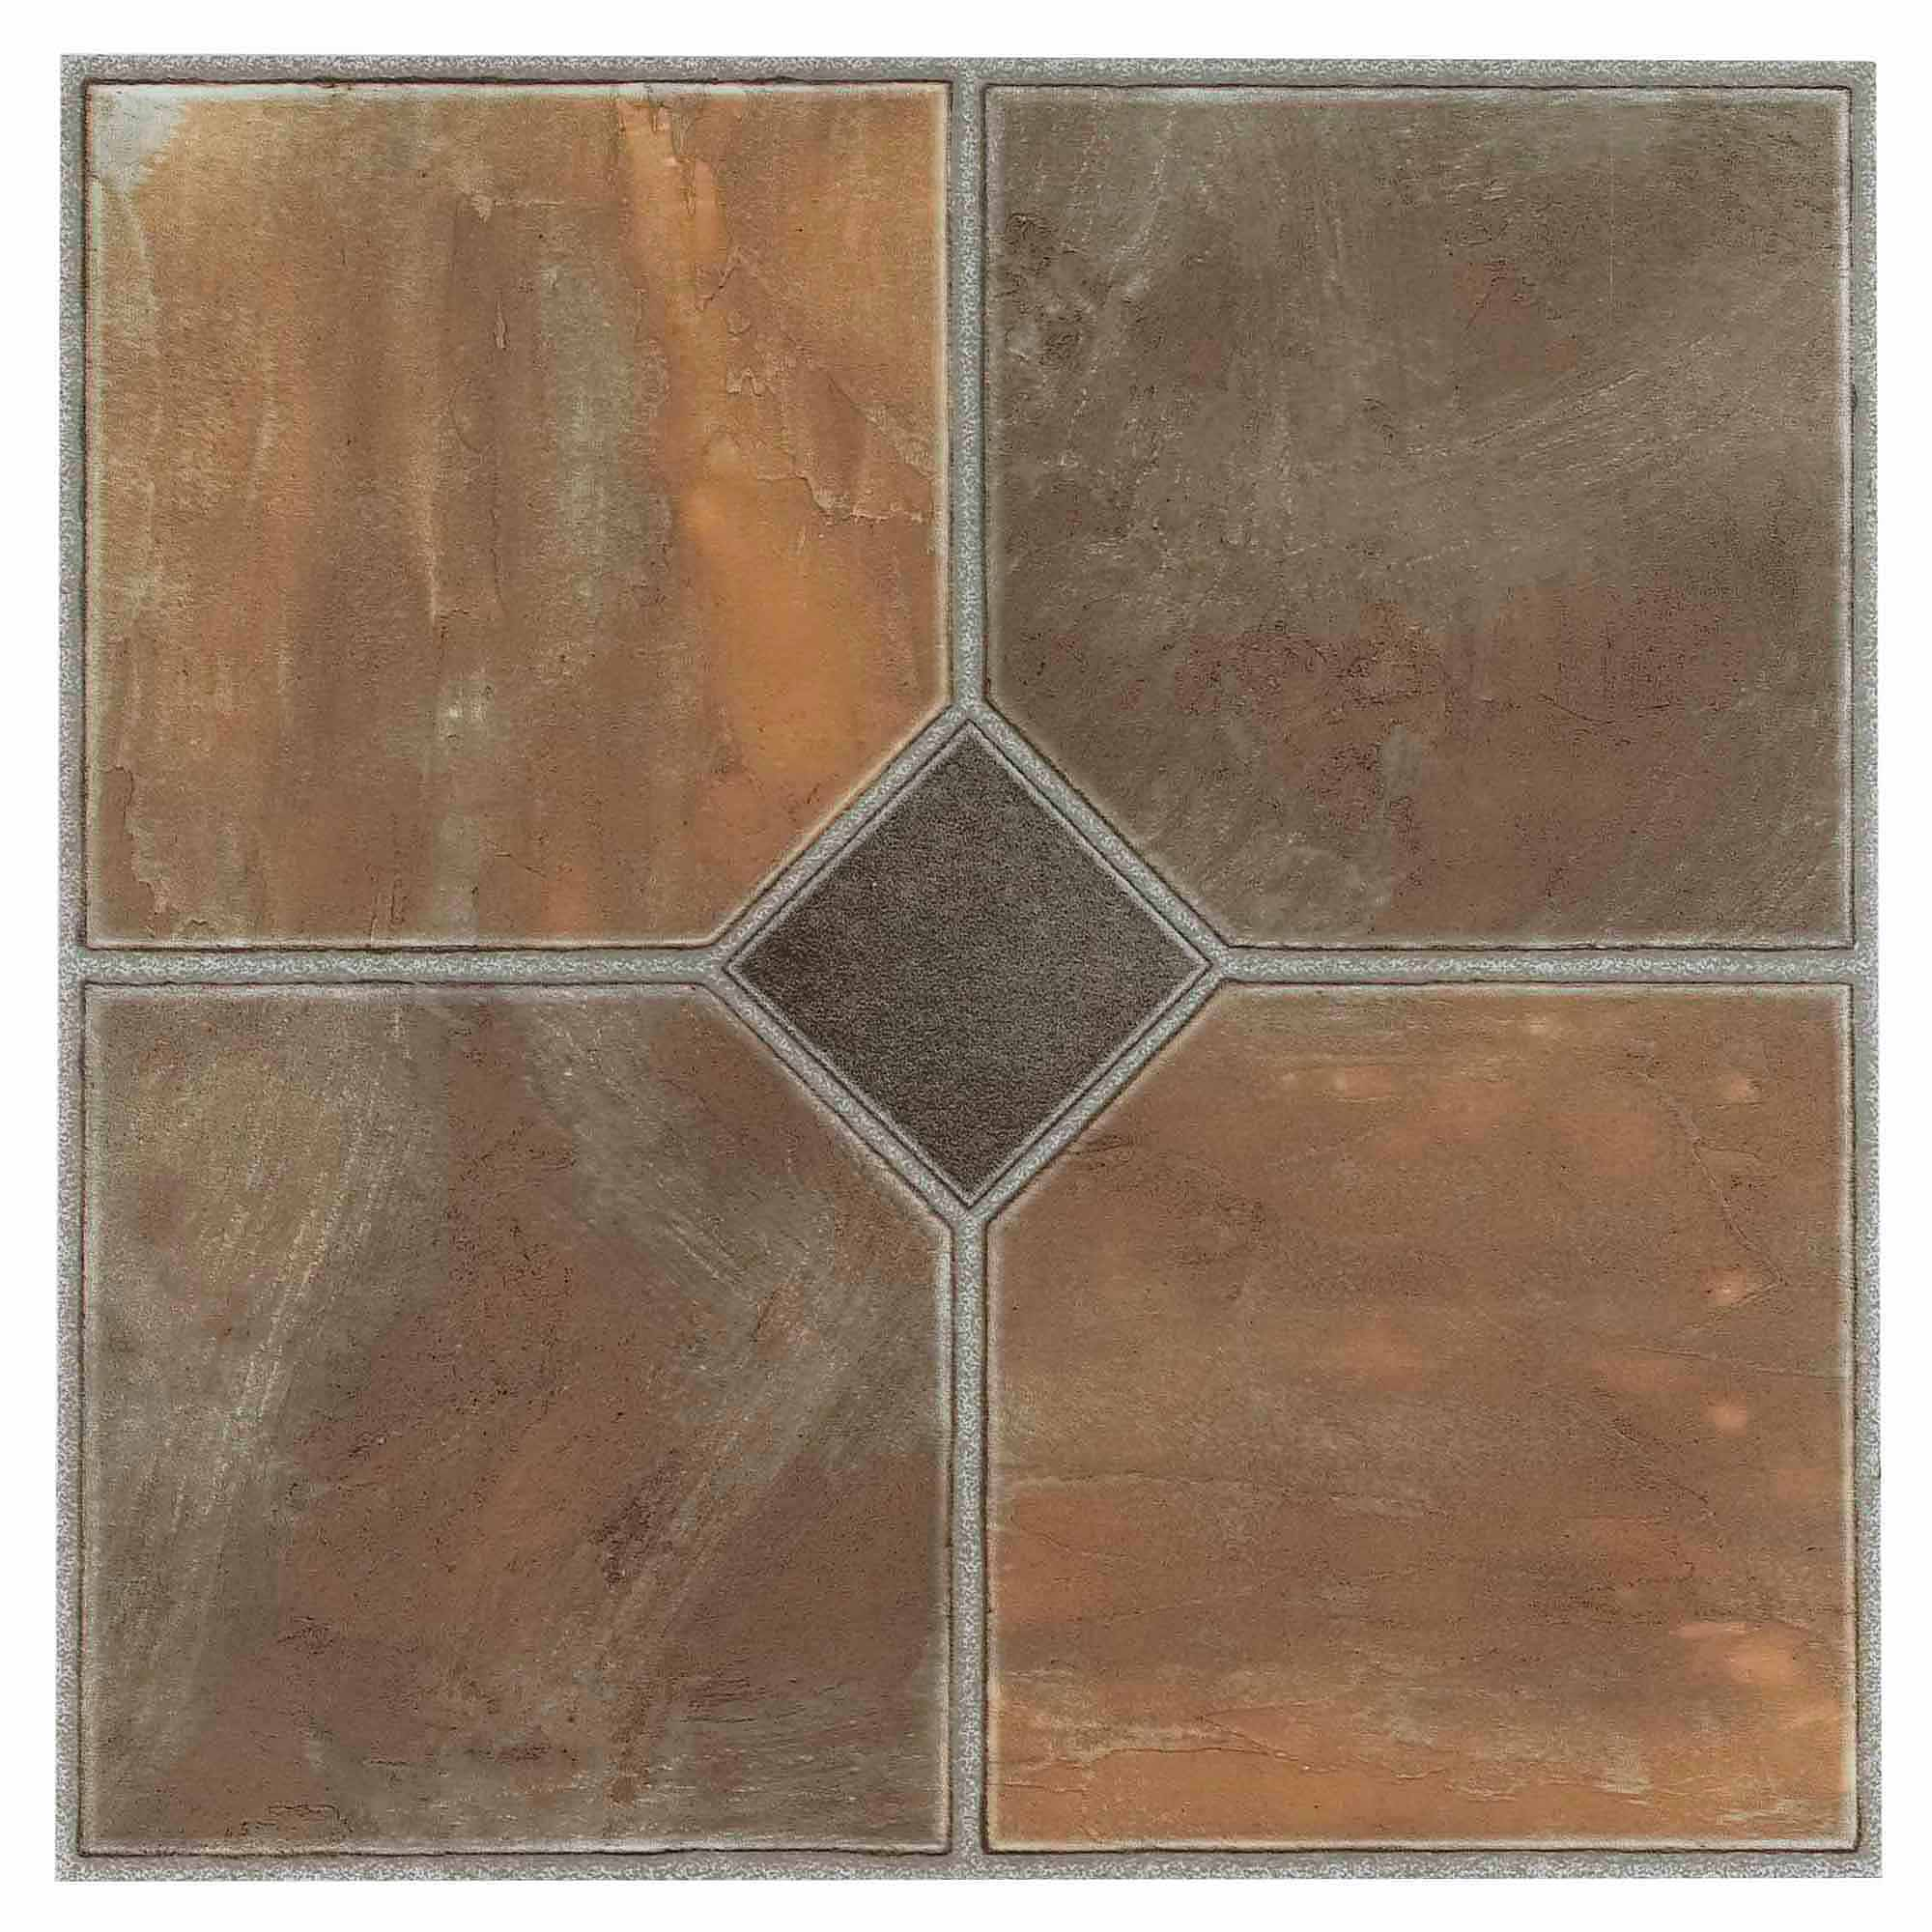 Nexus rustic slate 12x12 self adhesive vinyl floor tile 20 tiles nexus rustic slate 12x12 self adhesive vinyl floor tile 20 tiles20 sqft walmart dailygadgetfo Choice Image